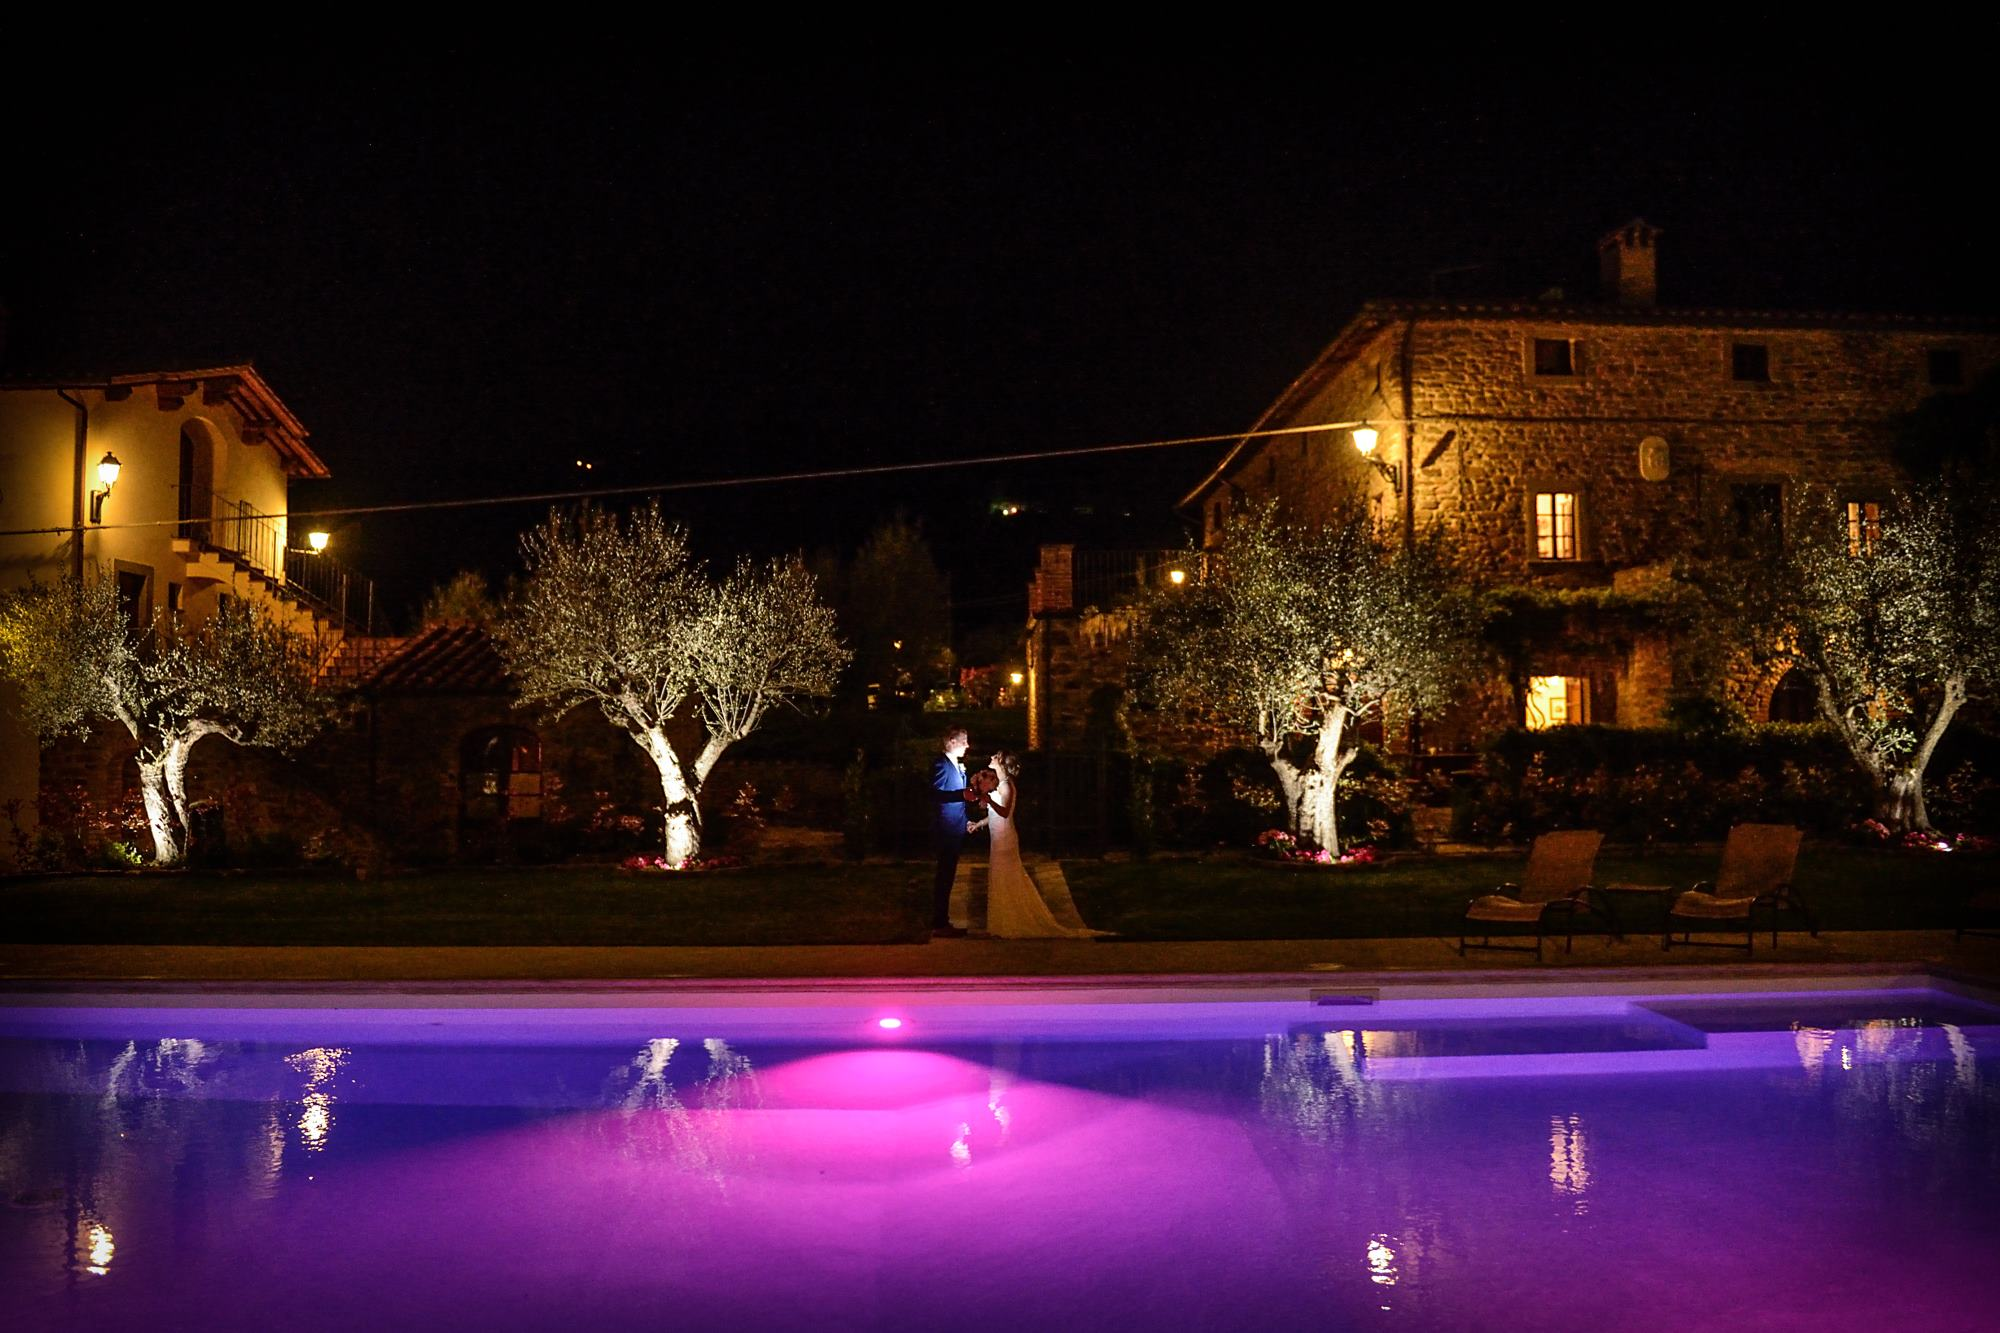 Pool Wedding Ideas In Our Pool Receptions And Ceremonies